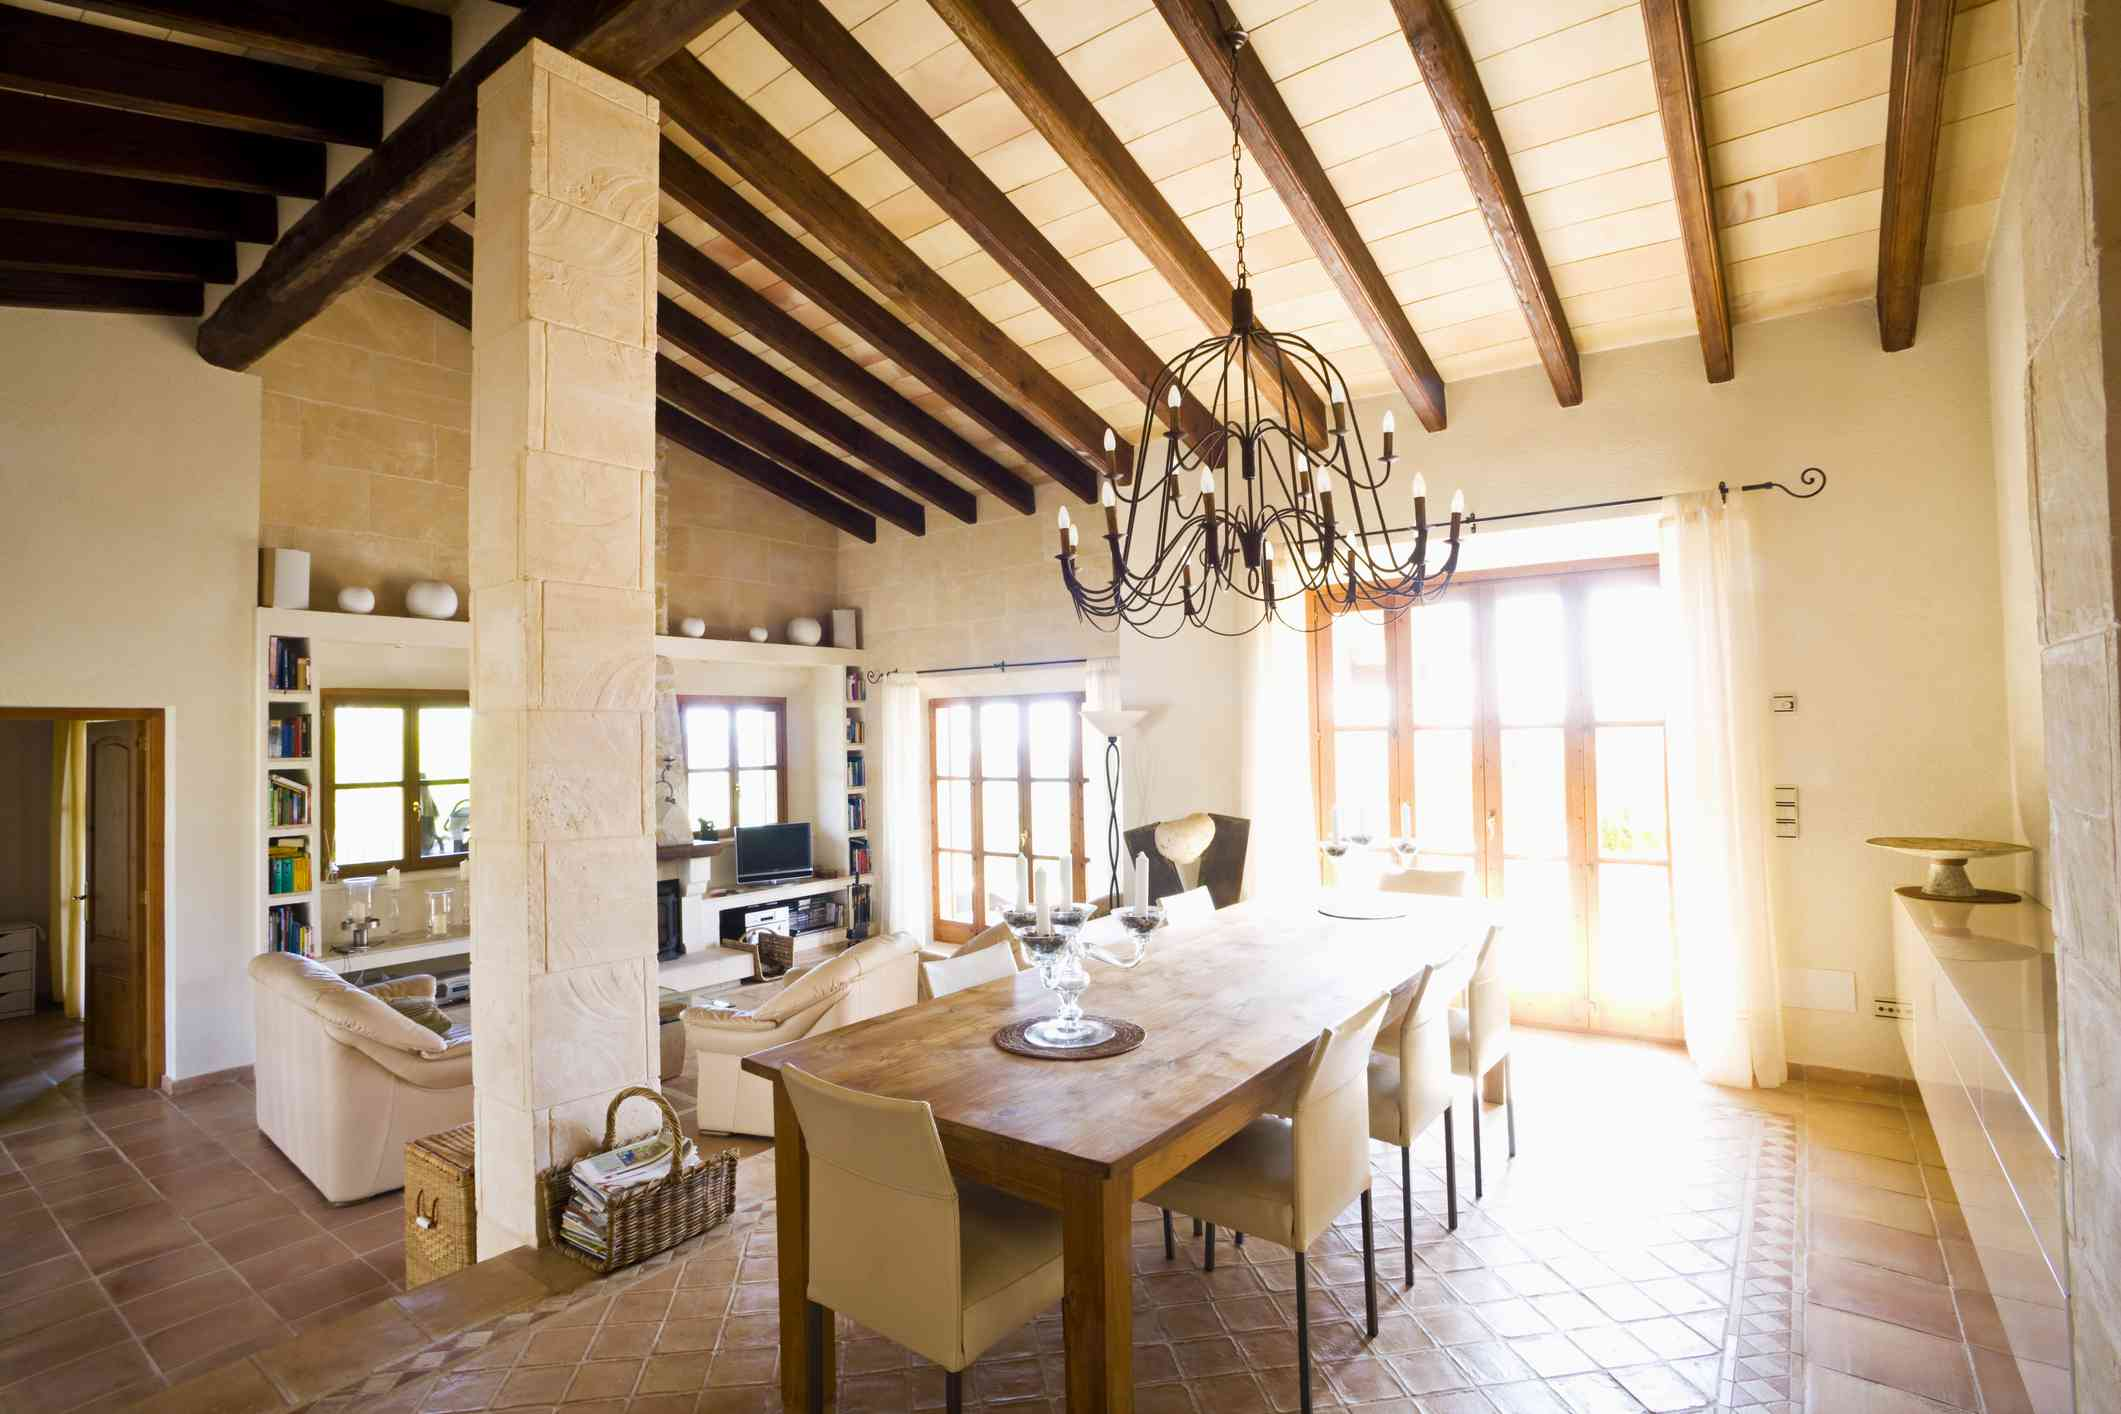 Home with exposed Beam Ceiling